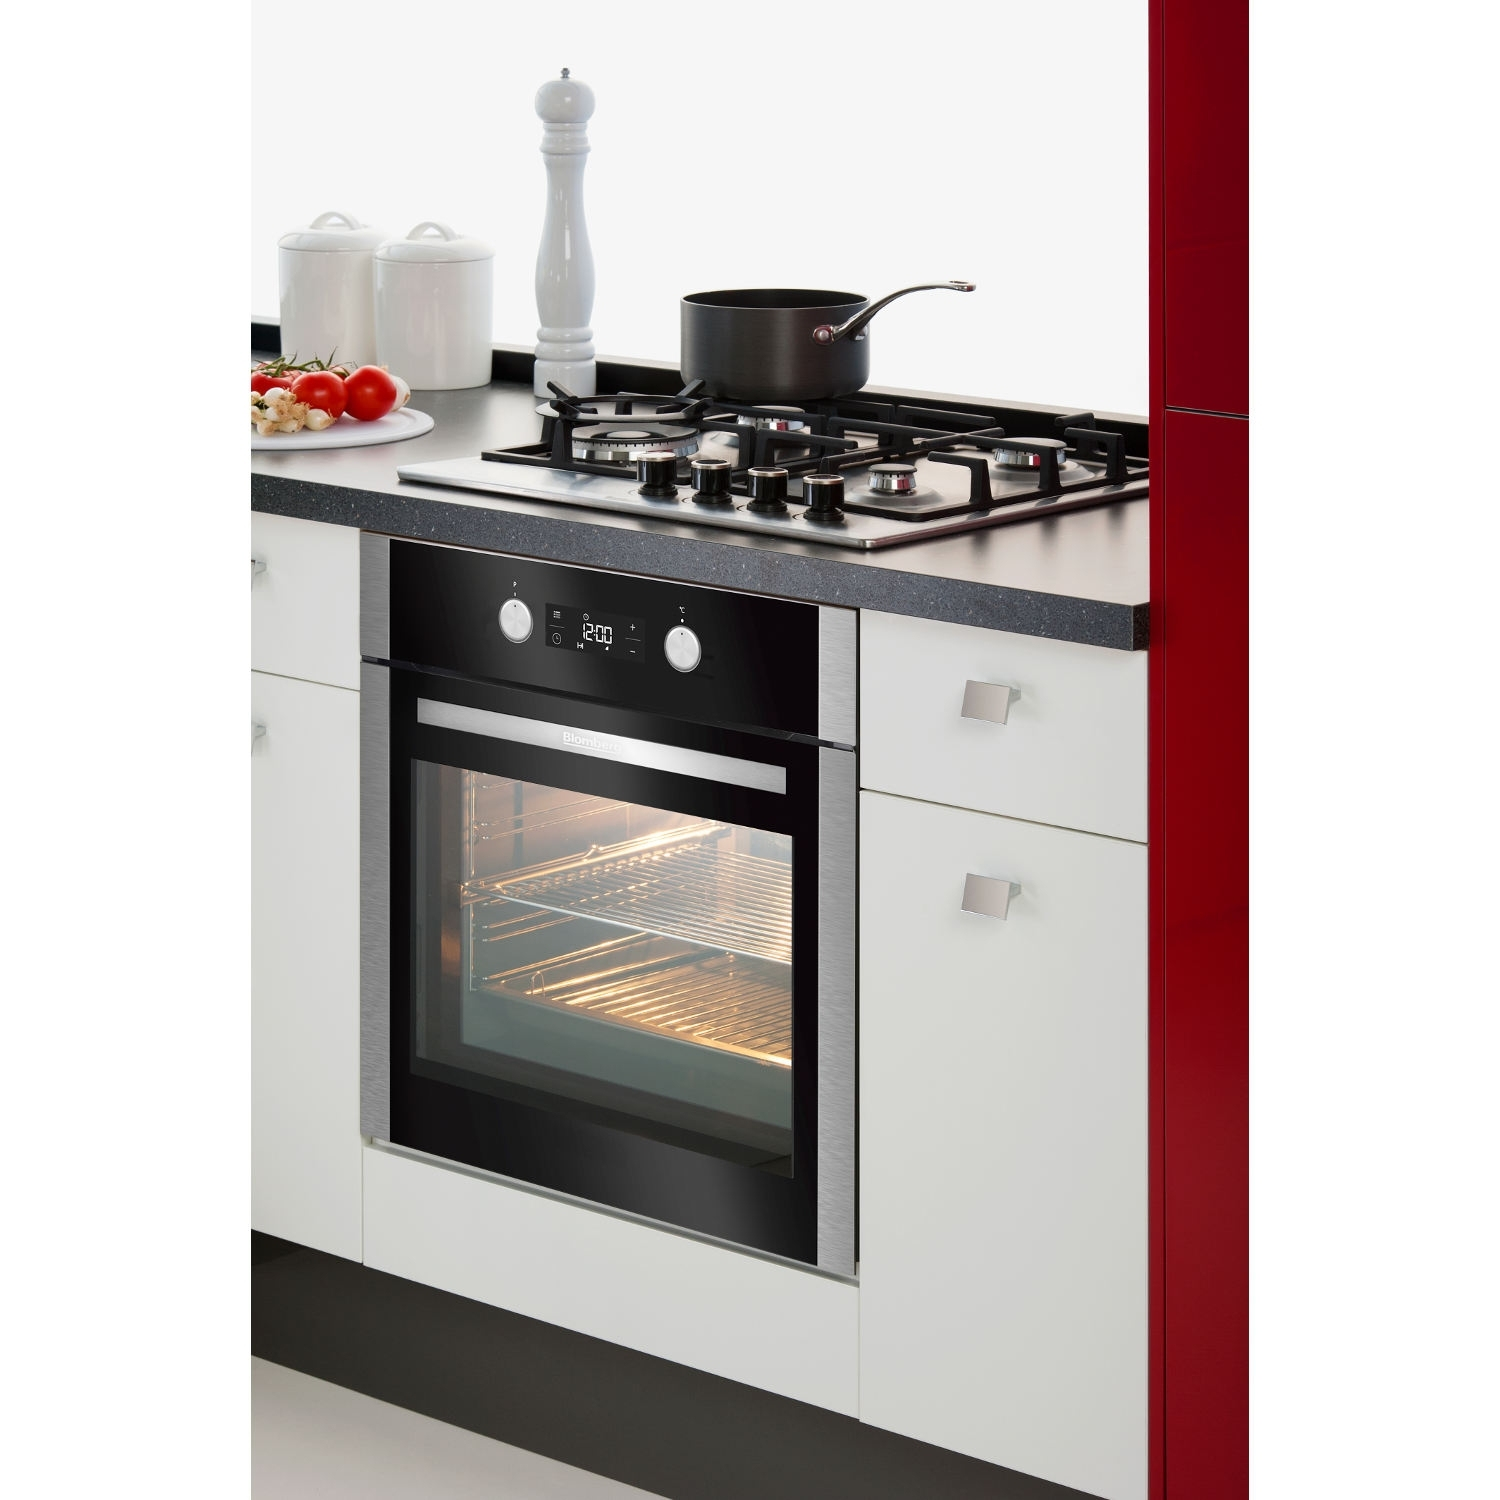 Blomberg OEN9302X 59.4cm Built Electric Single Oven - Stainless Steel - 1